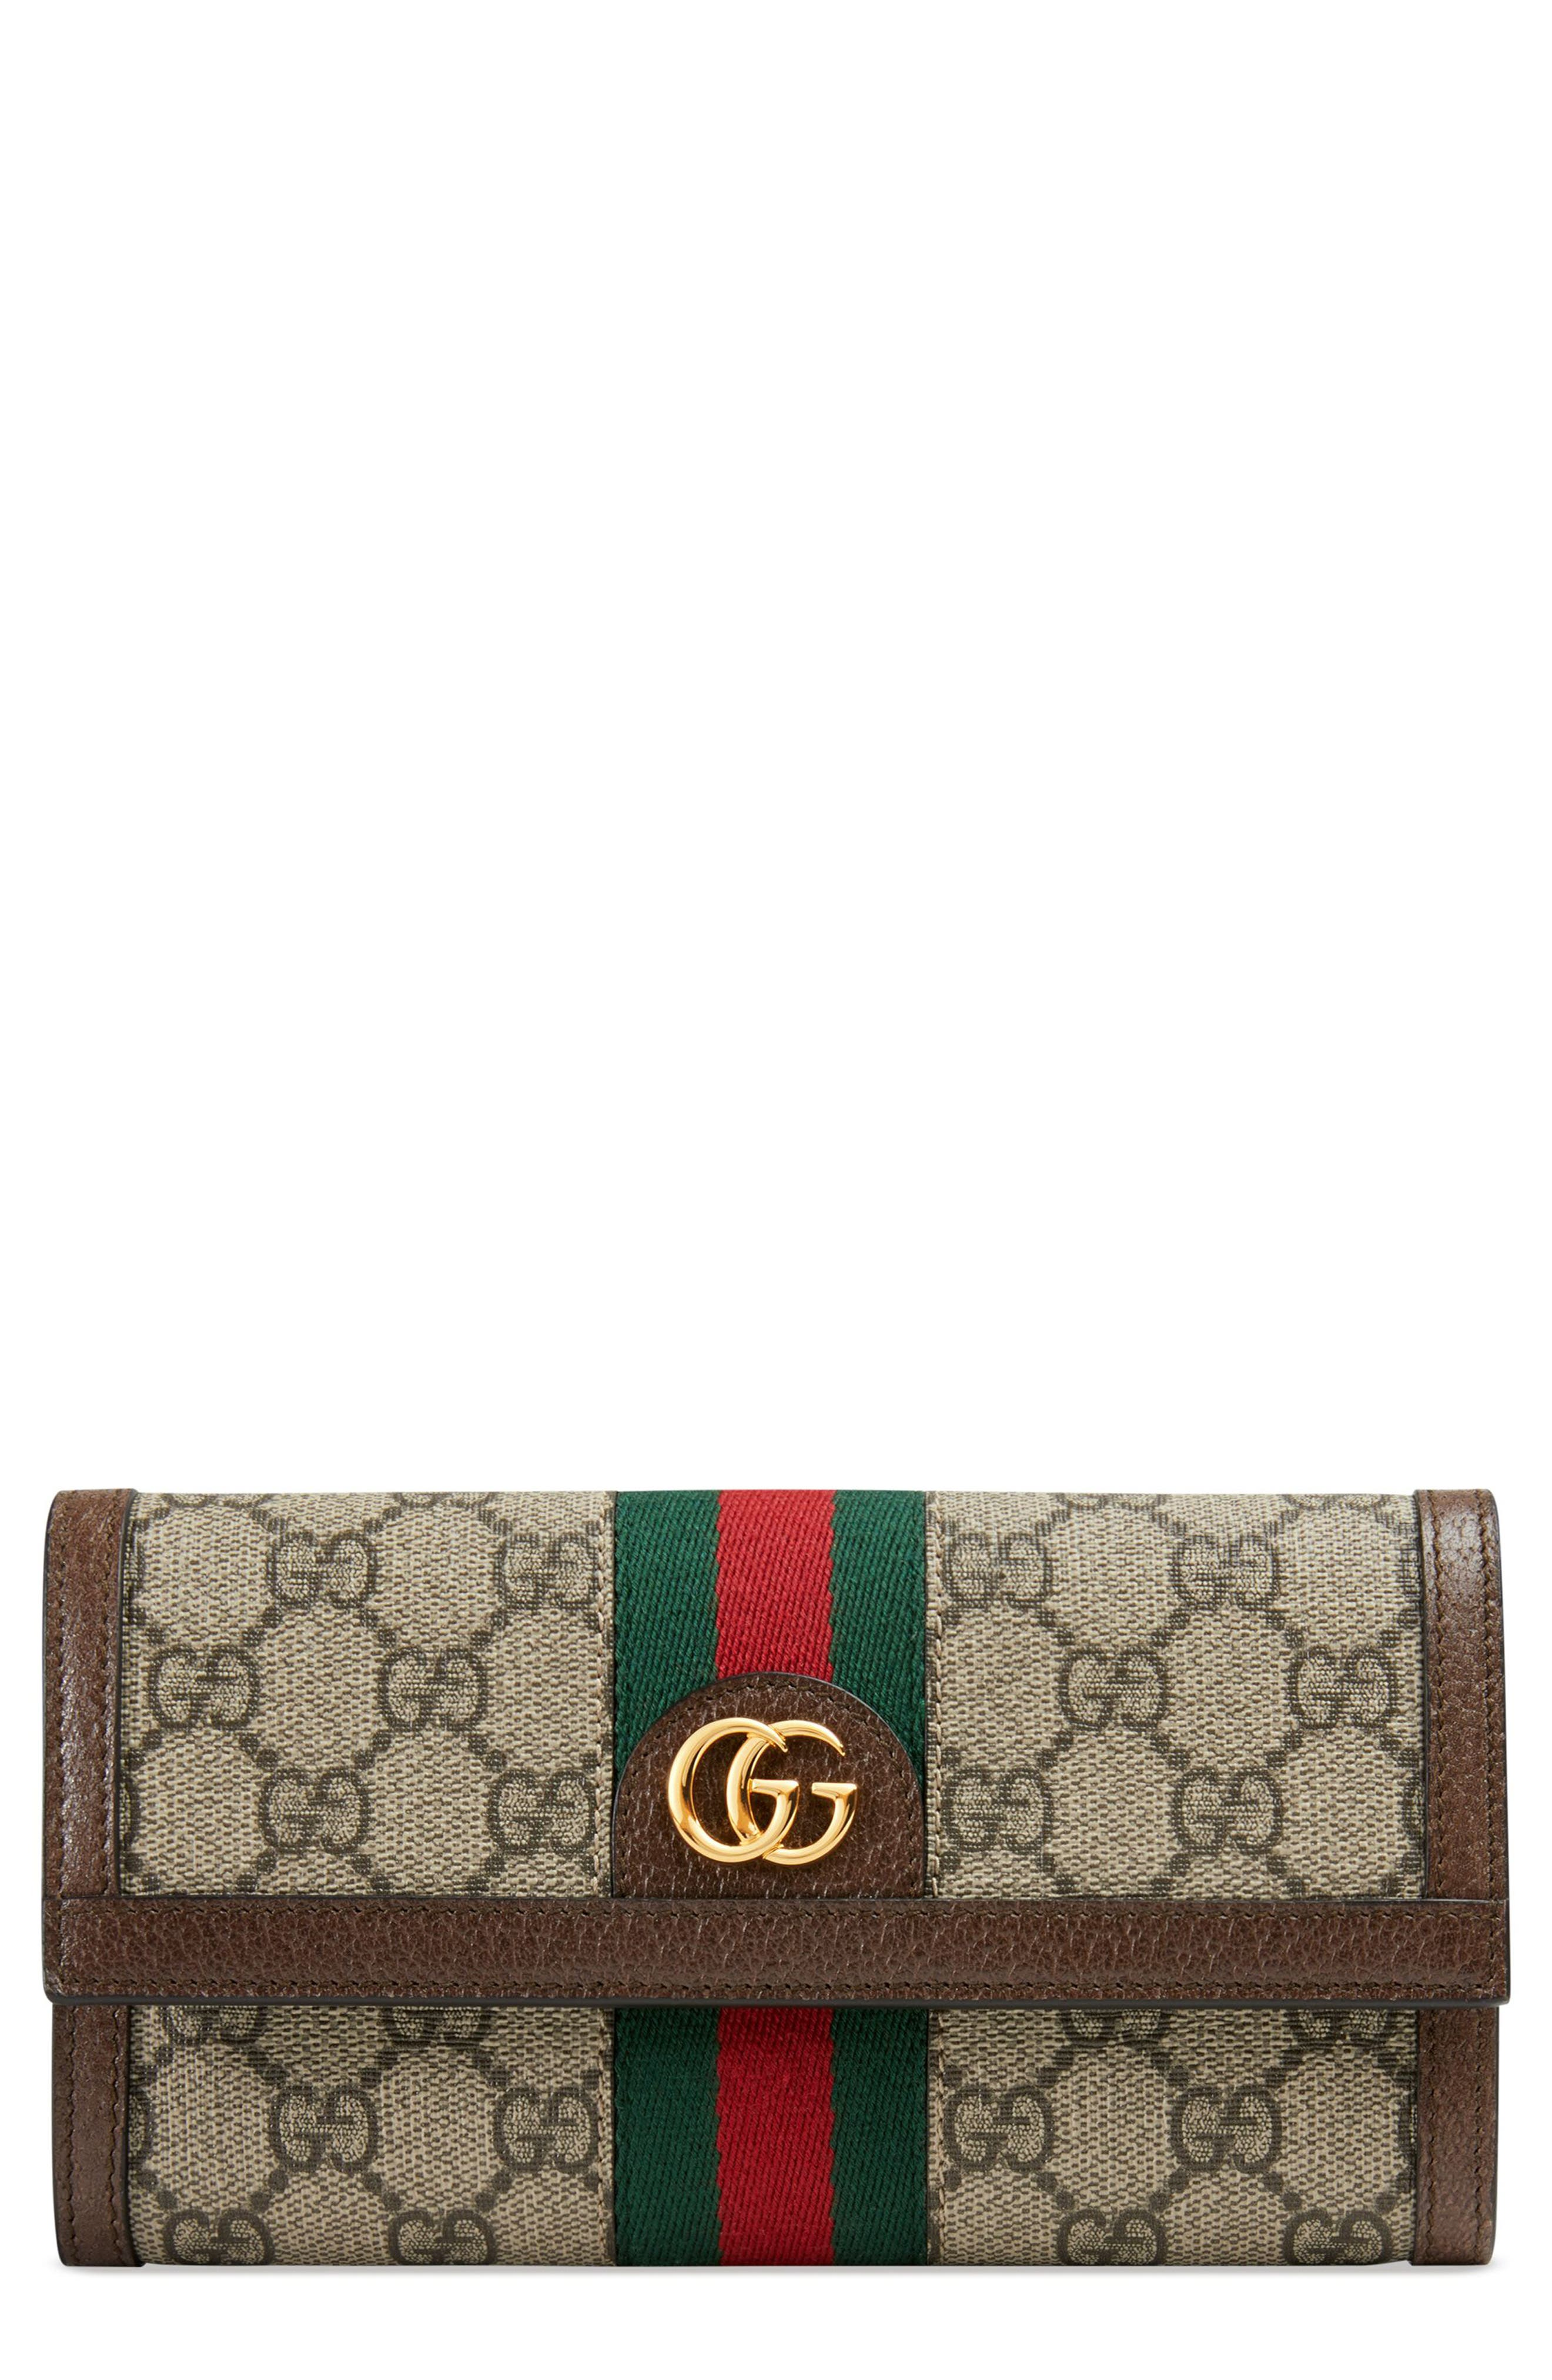 GUCCI Ophidia GG Supreme Continental Wallet, Main, color, BEIGE EBONY/ ACERO/ VERT RED